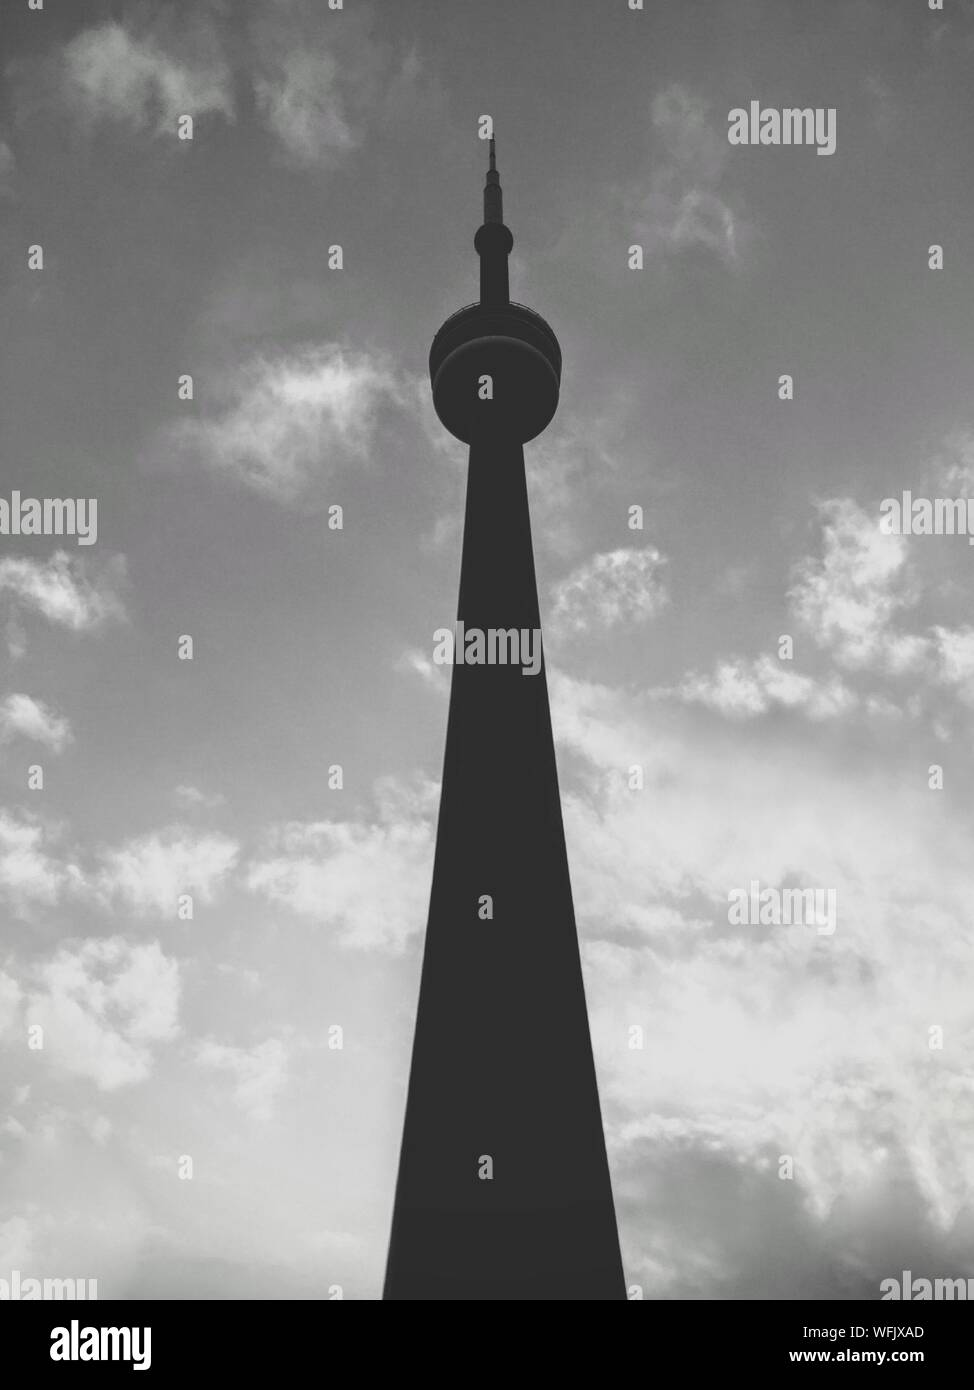 Low Angle View Of Cn Tower Against Cloudy Sky Stock Photo